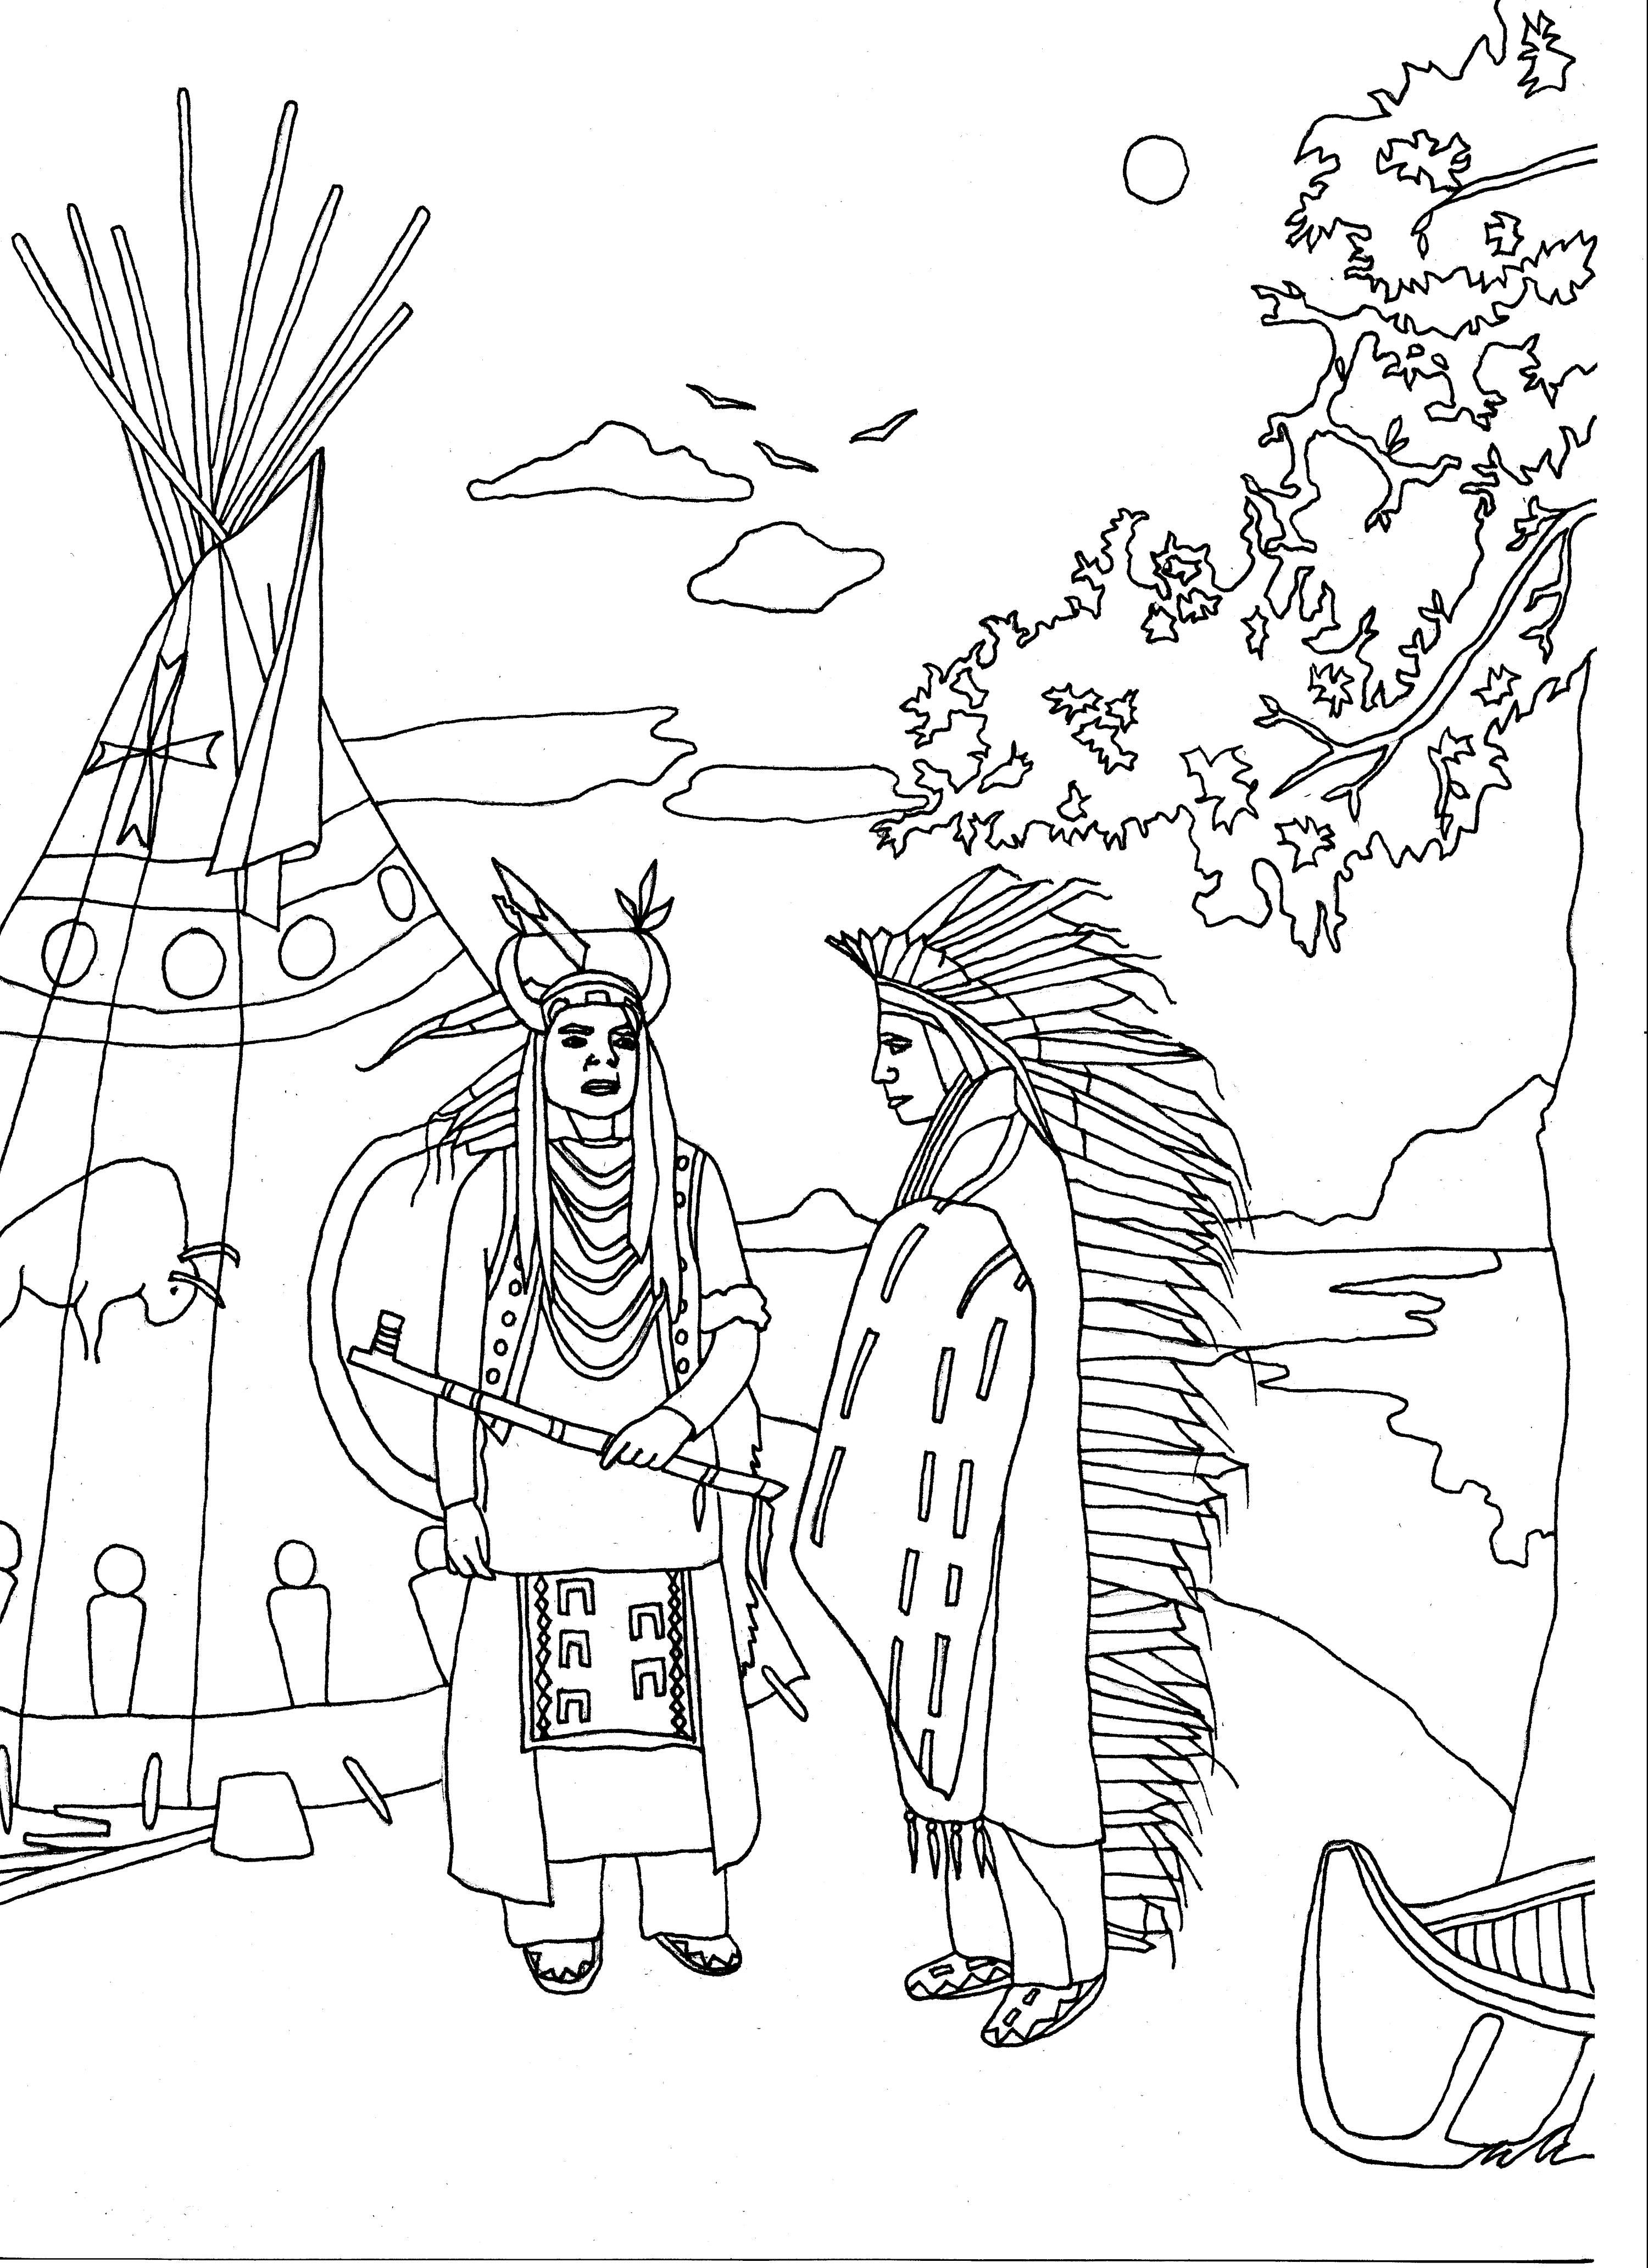 Free Coloring Page Coloring Adult Two Native Americans By